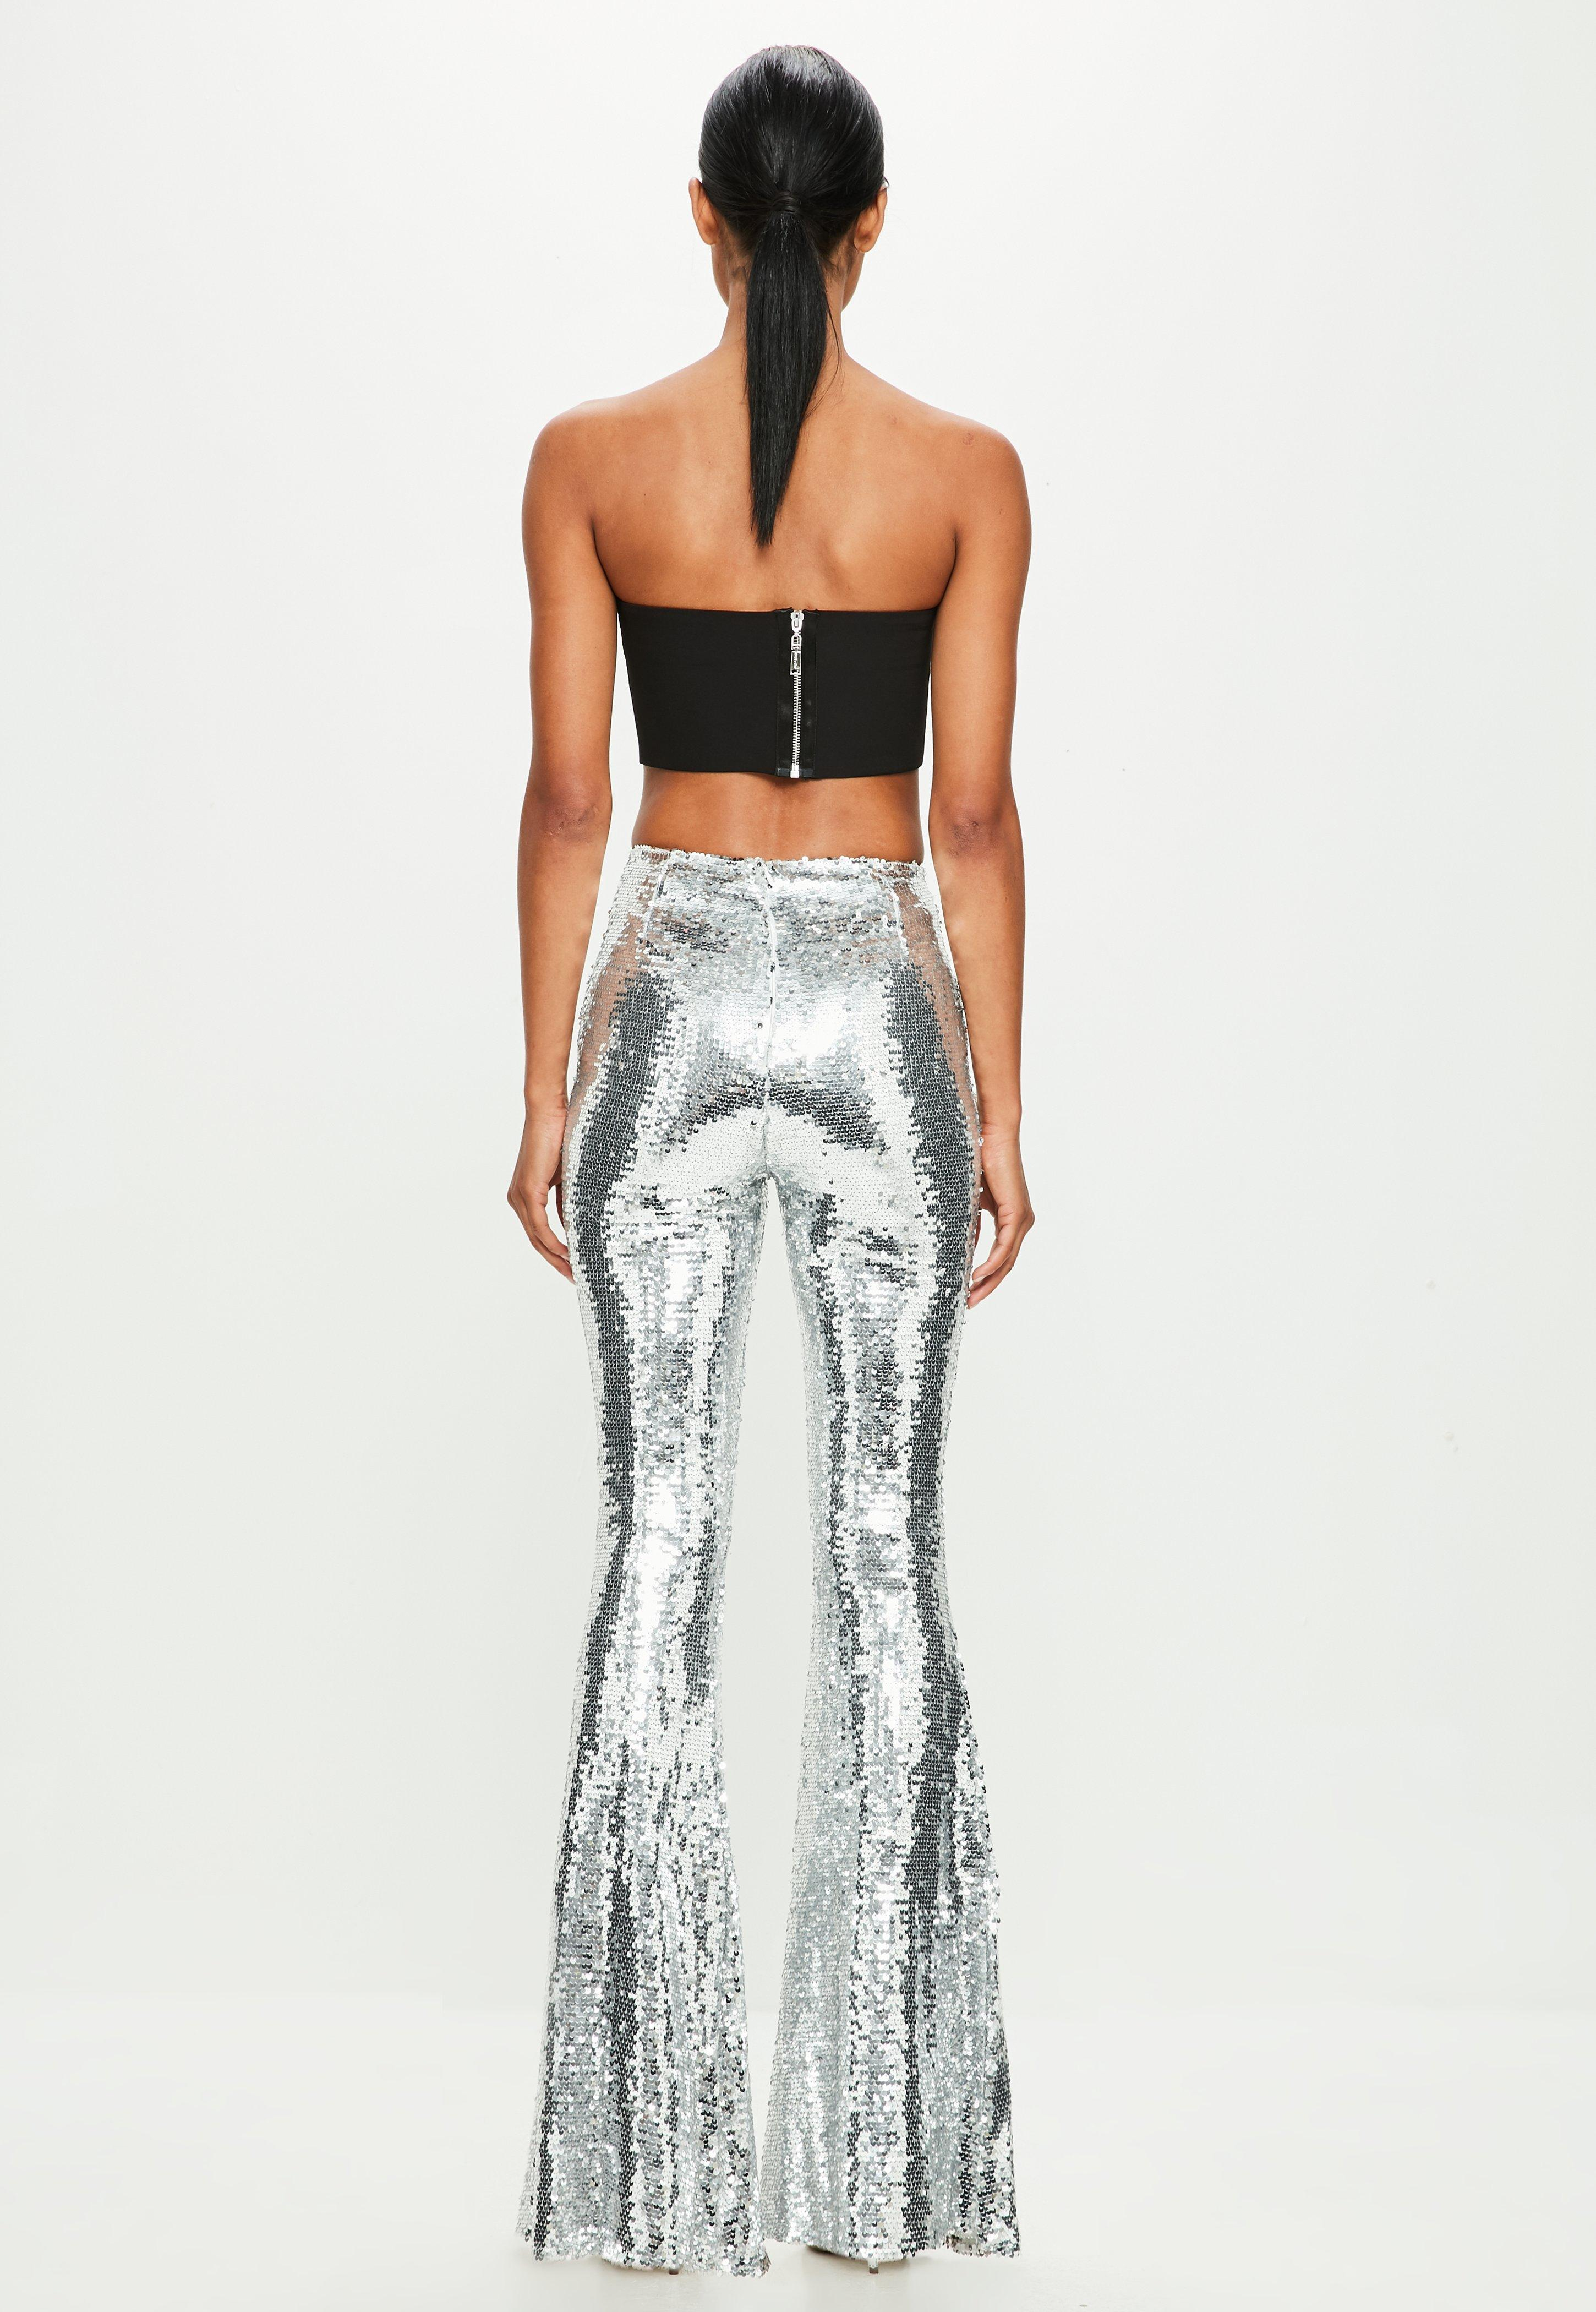 301c8994f98 Missguided Peace + Love Silver Sequin Flared Leg Pants in Metallic ...